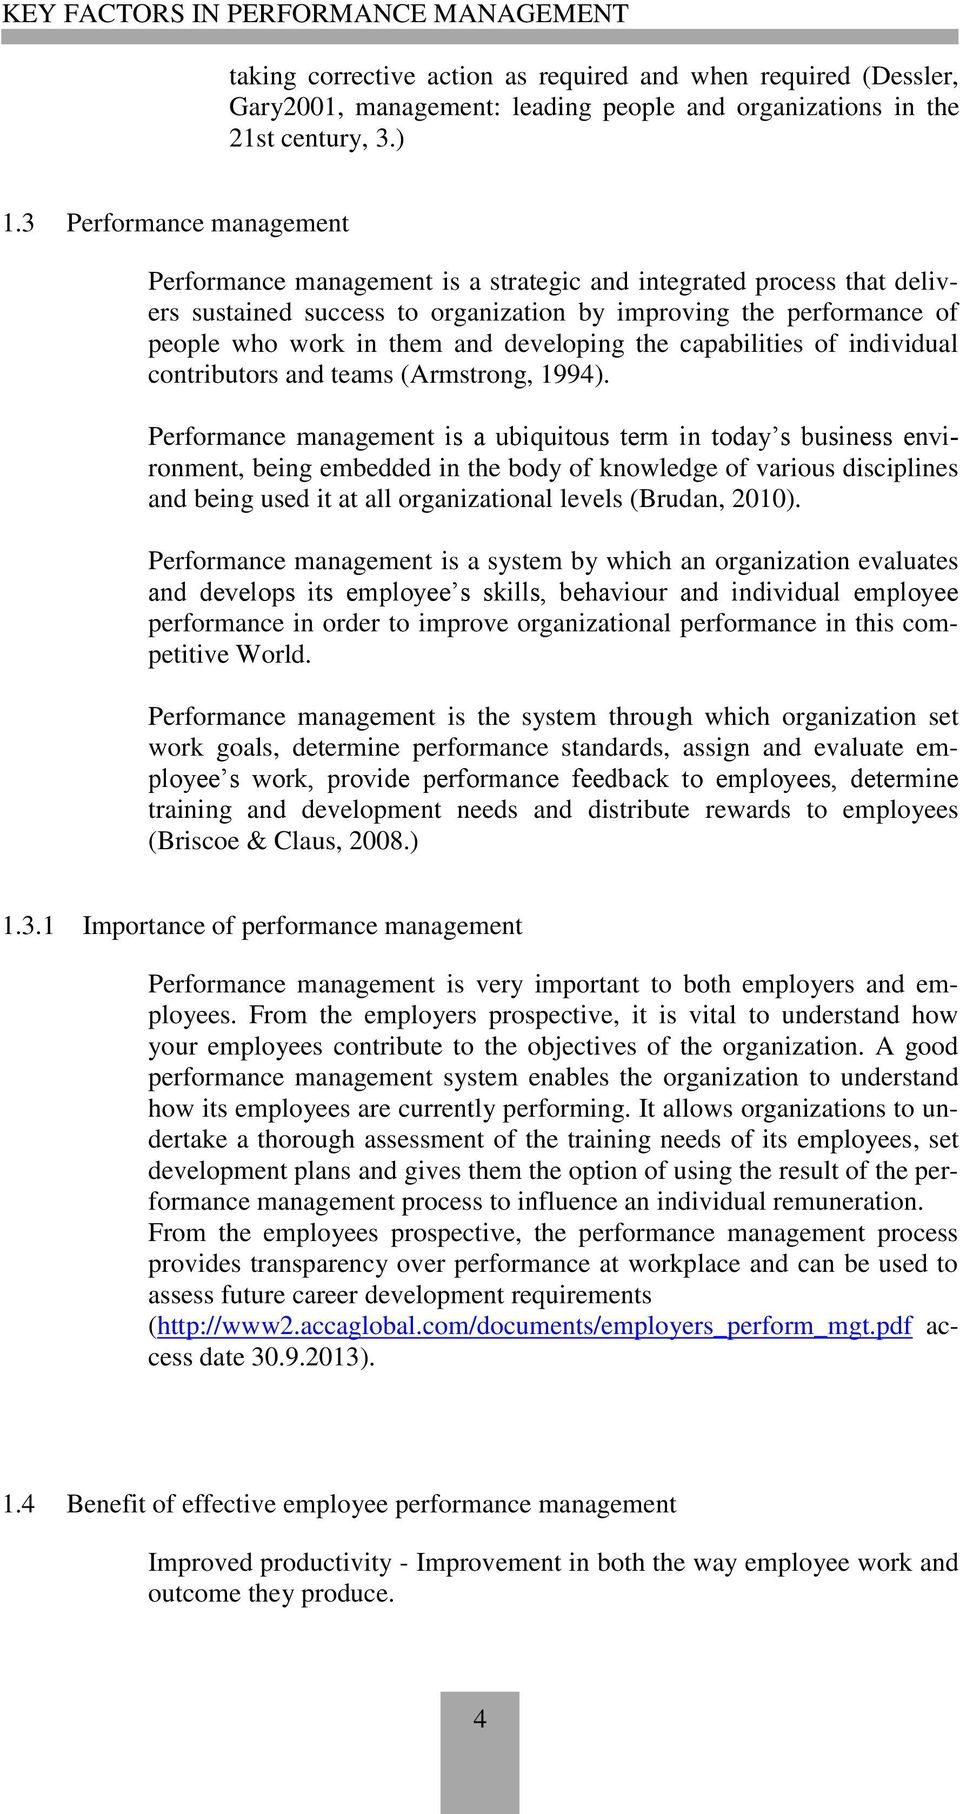 key factors in performance management pdf developing the capabilities of individual contributors and teams armstrong 1994